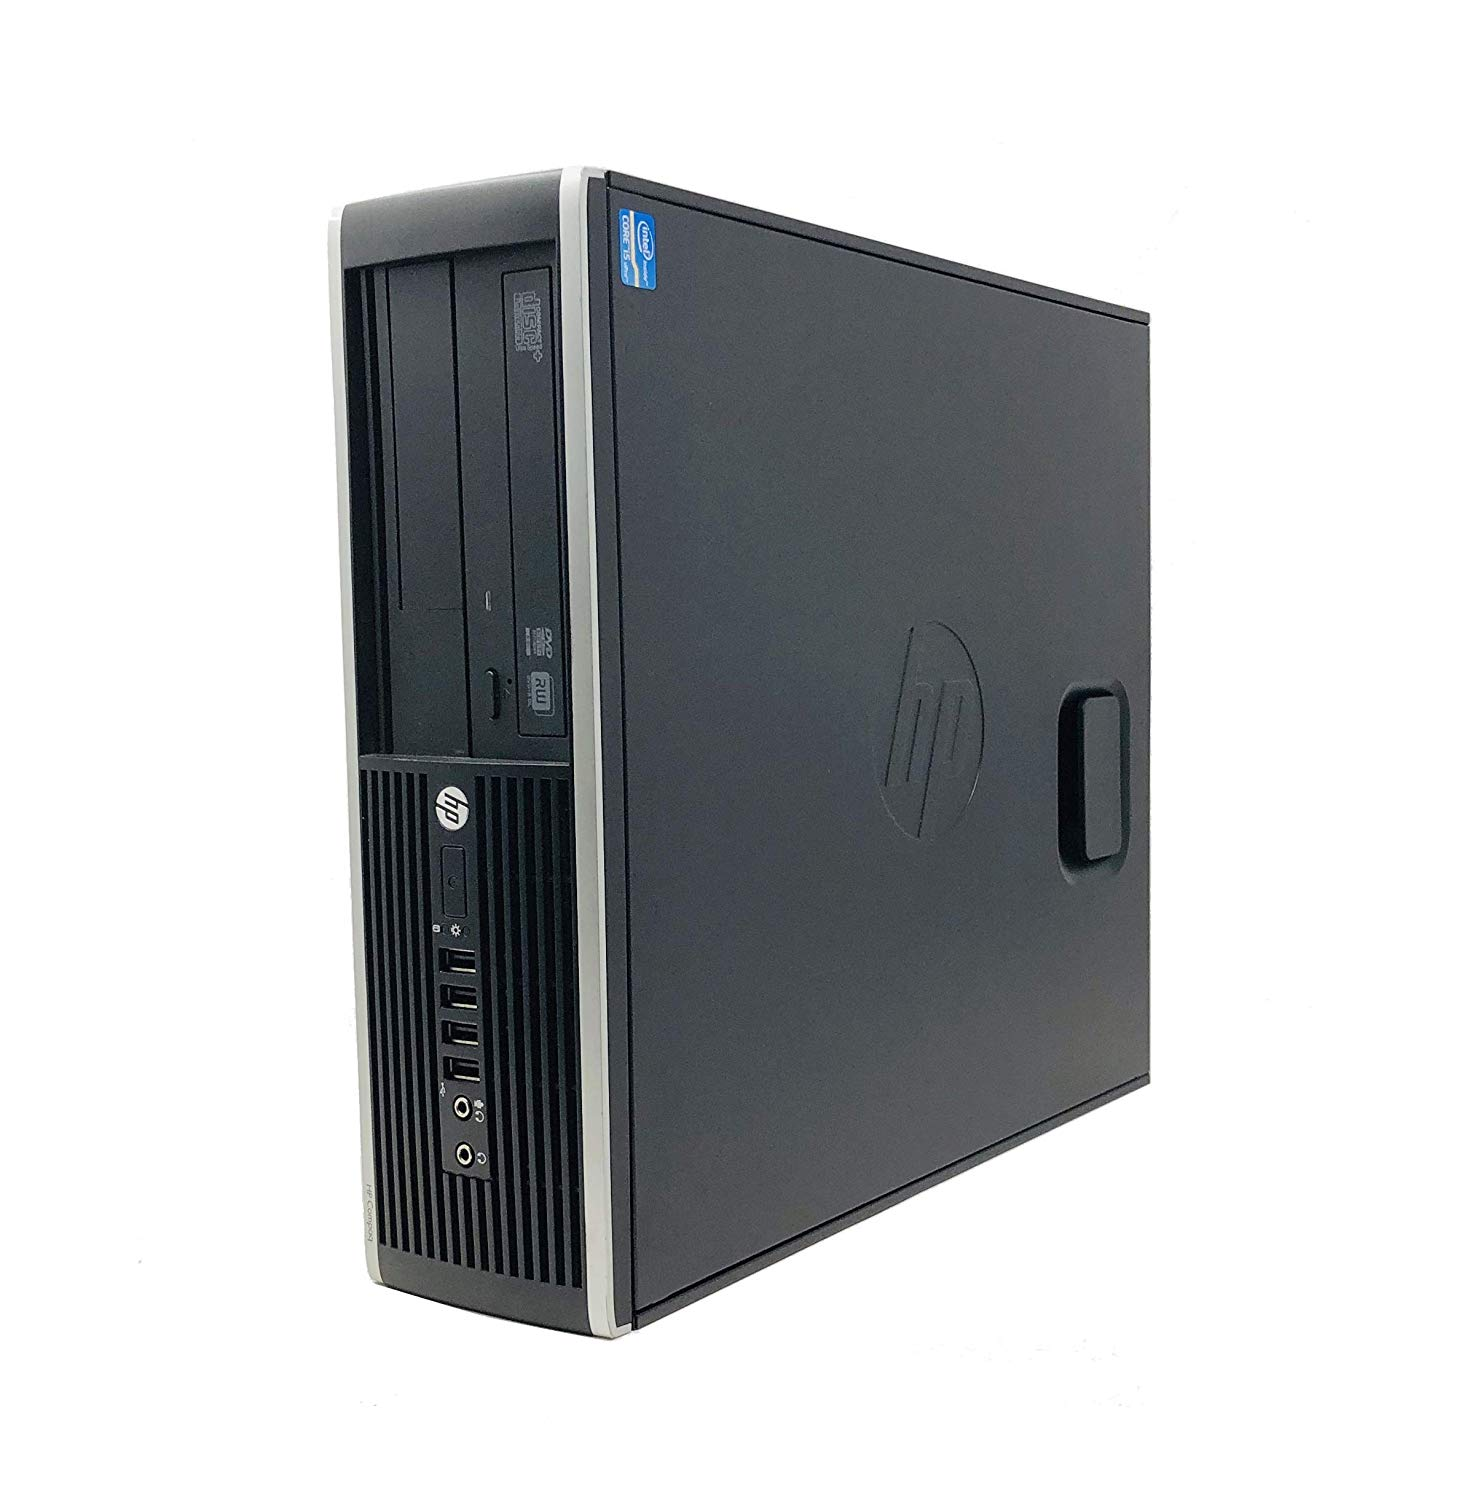 Hp Elite 8200 - Ordenador De Sobremesa (Intel  I5-2400, Sin Lector, 8GB De RAM, Disco SSD De 480GB , Windows 7 PRO ) - Negro (Reacondicionado)